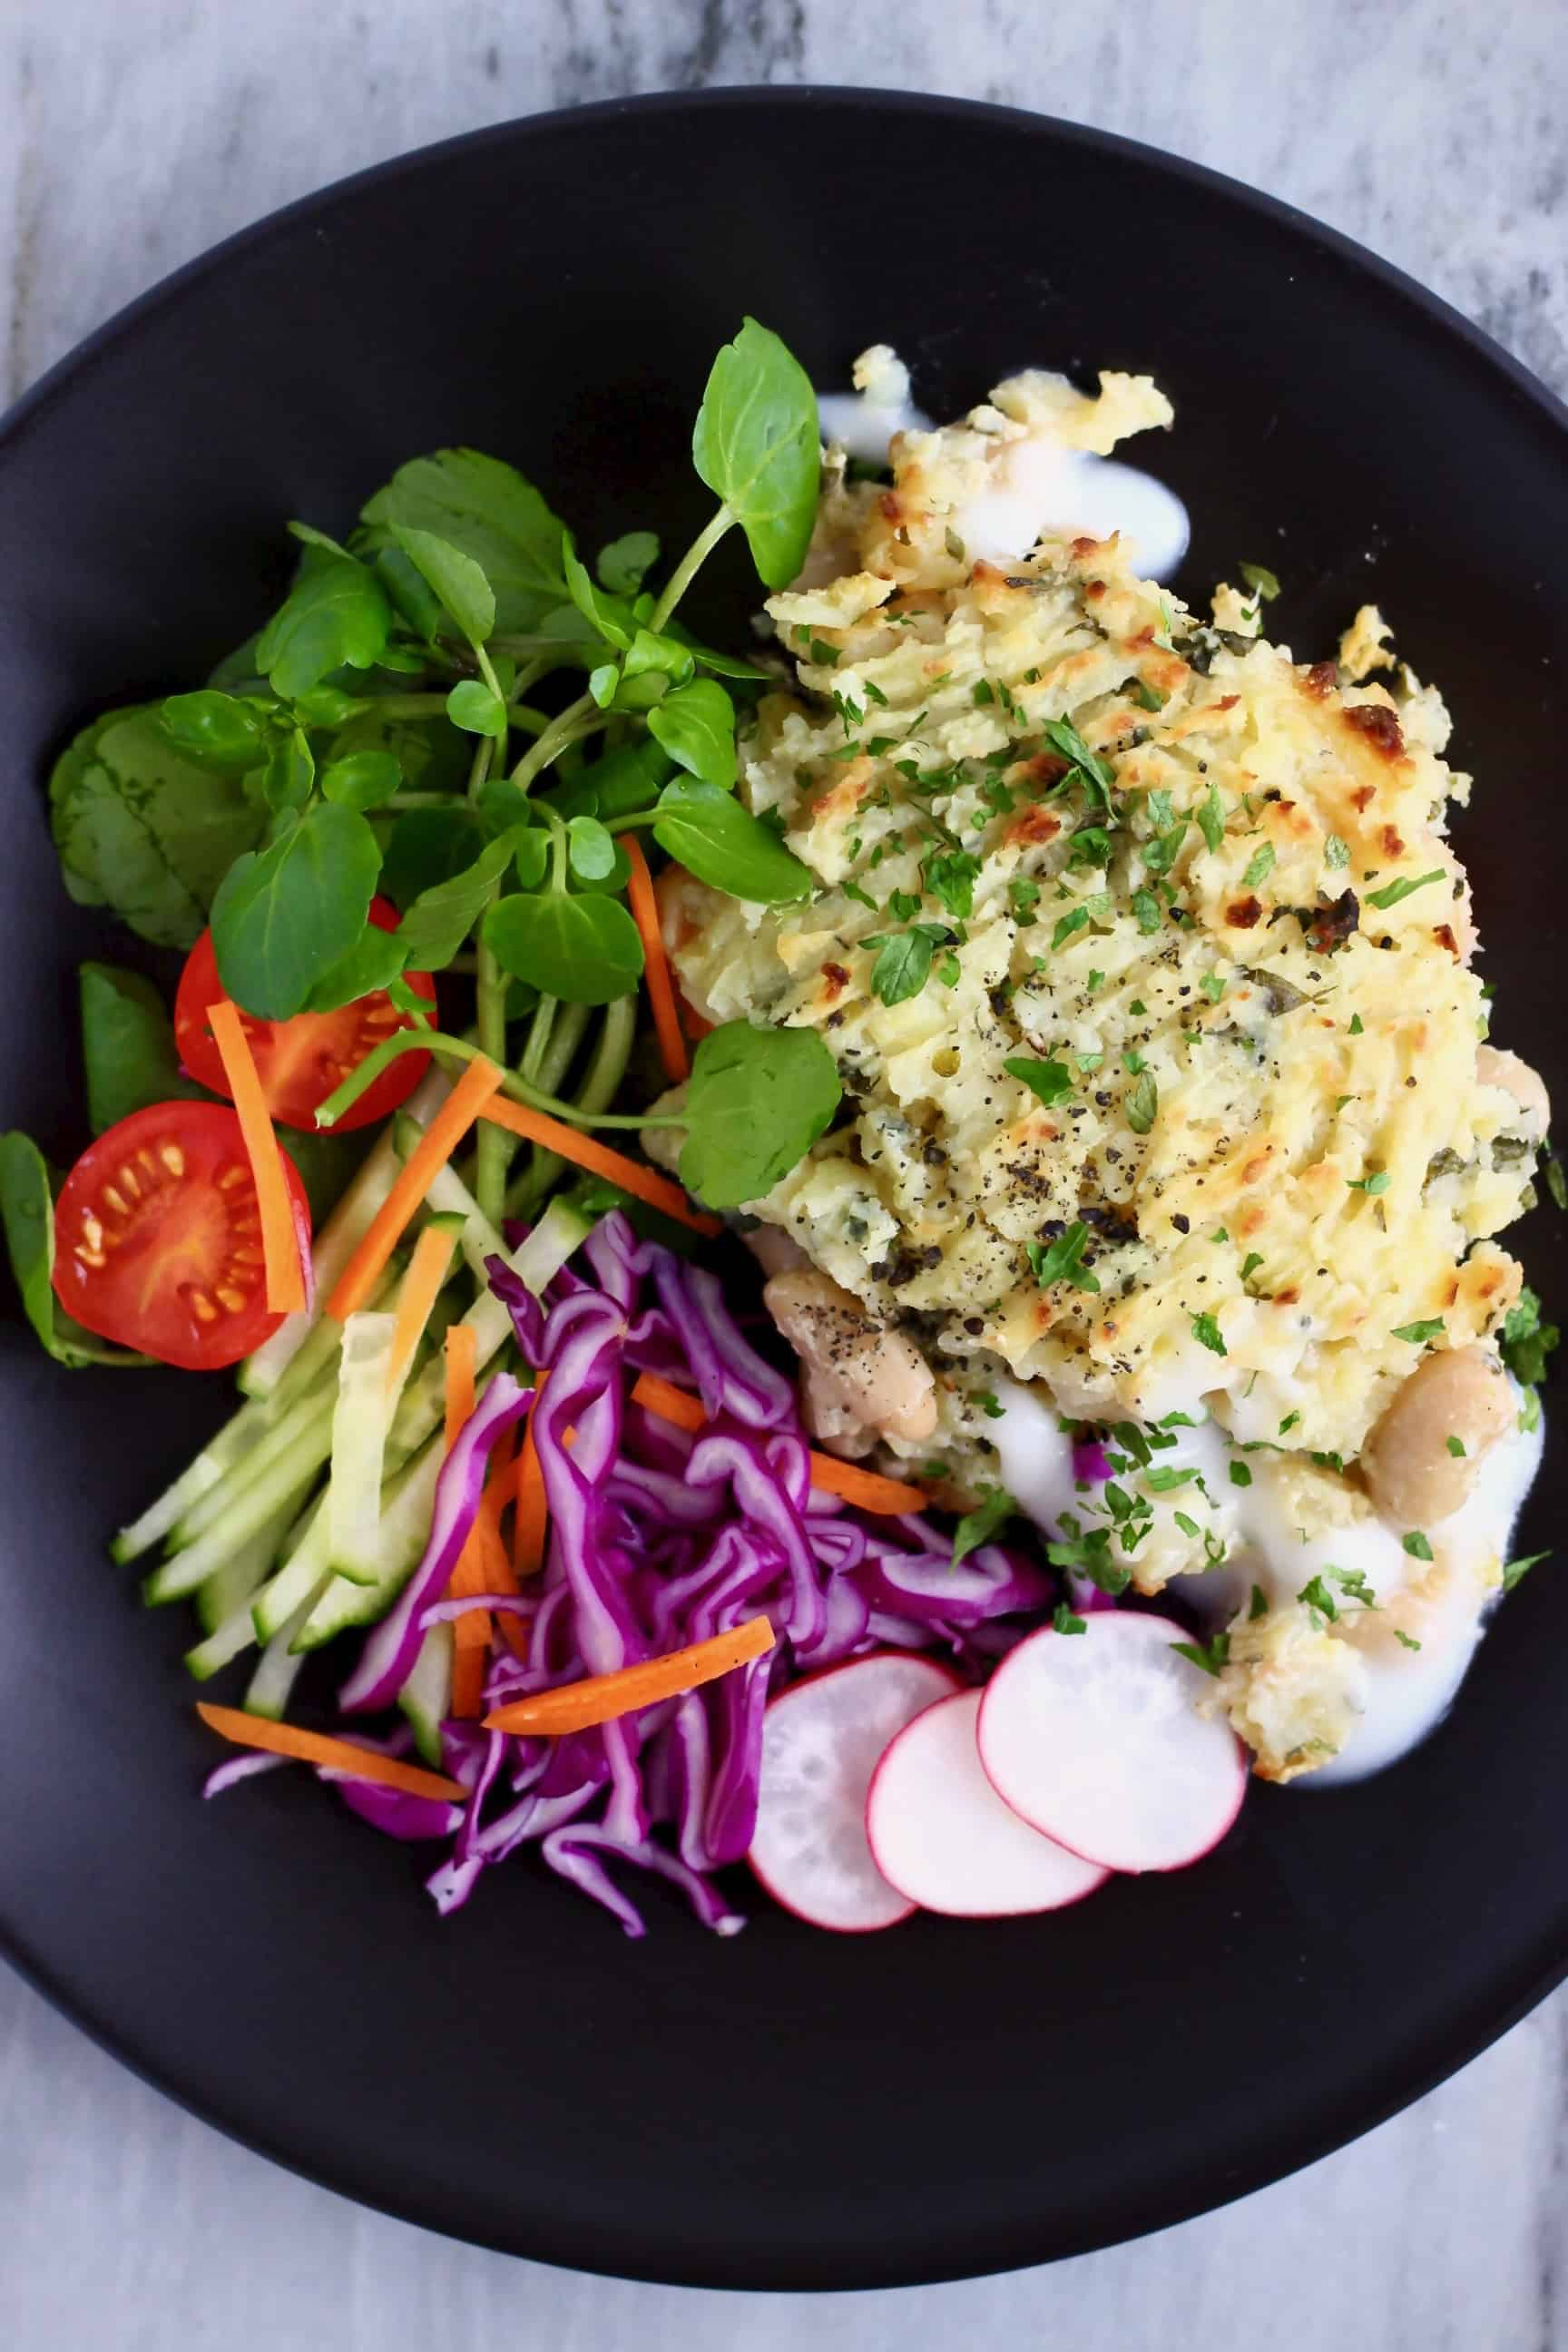 Vegan fish pie with watercress, sliced radishes and shredded purple cabbage on a black plate